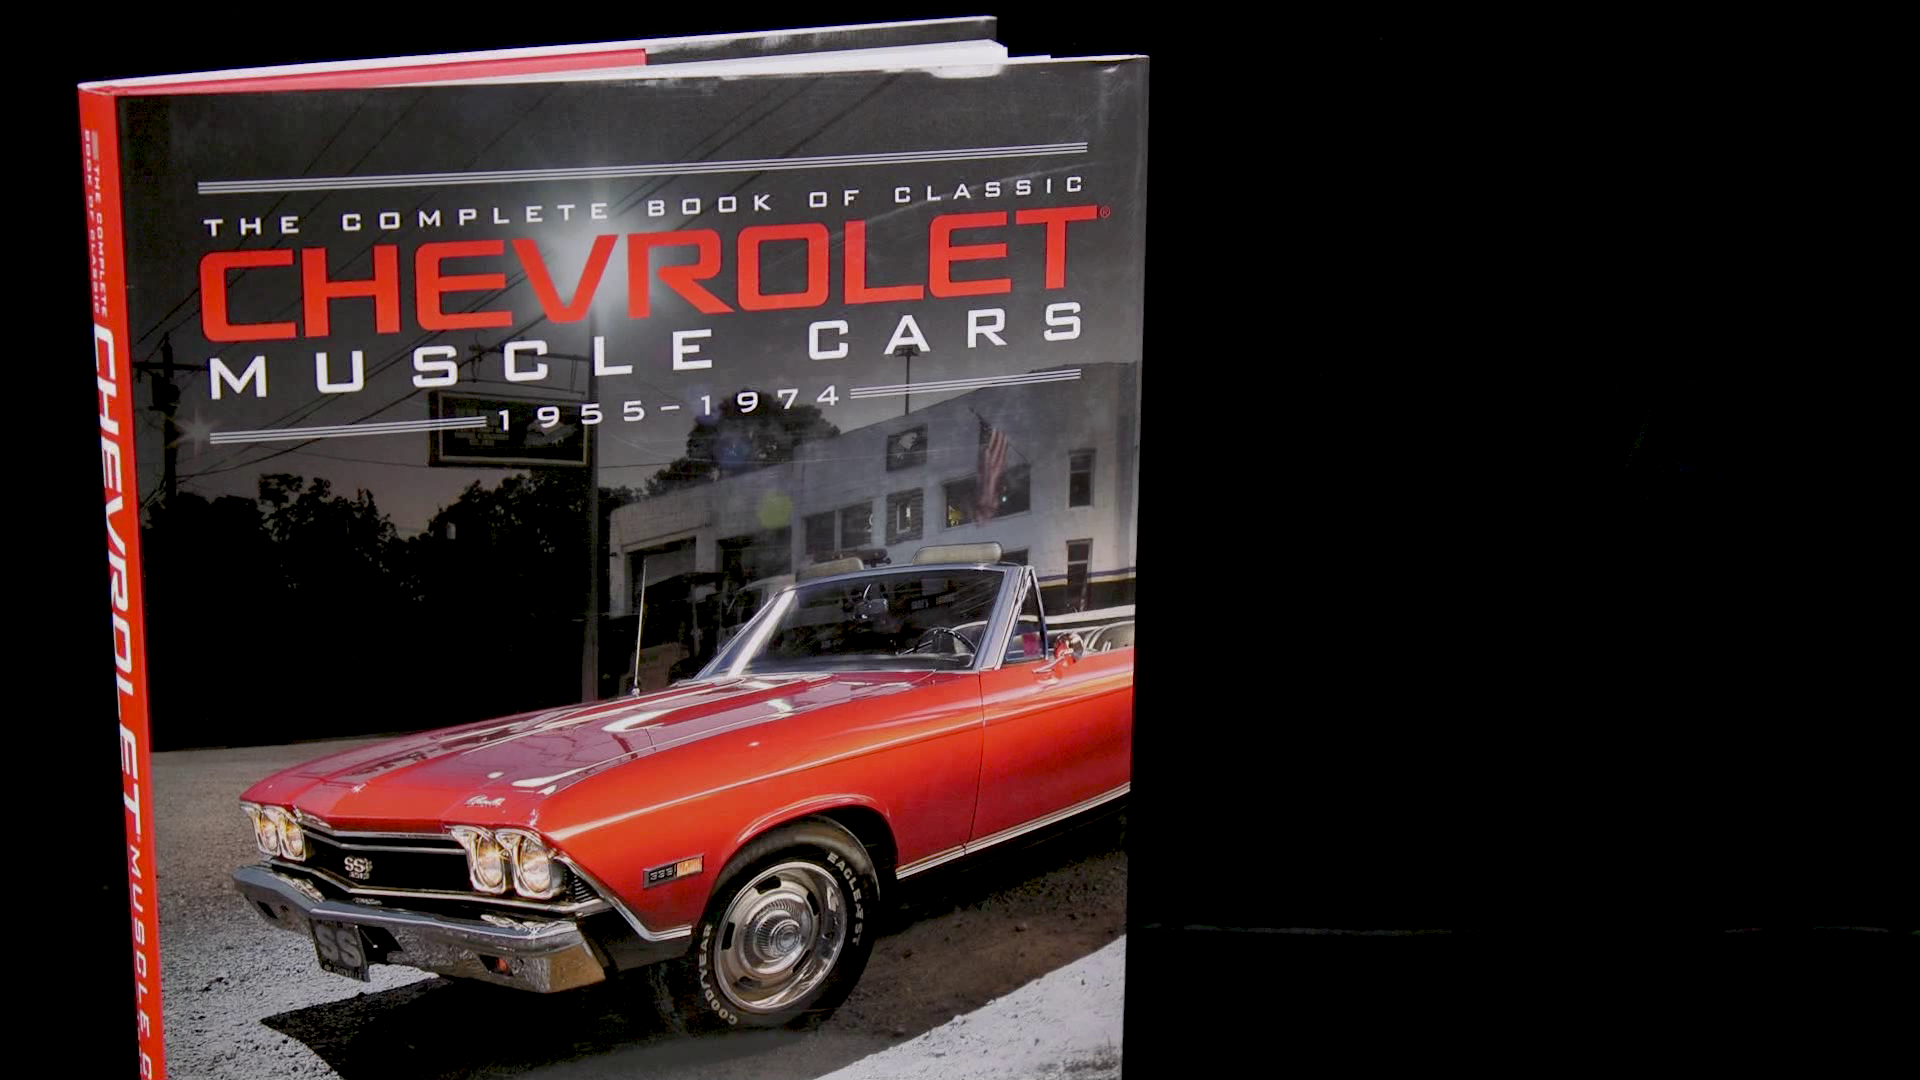 The Complete Book of Classic Chevrolet Muscle Cars: 1955-1974 ...